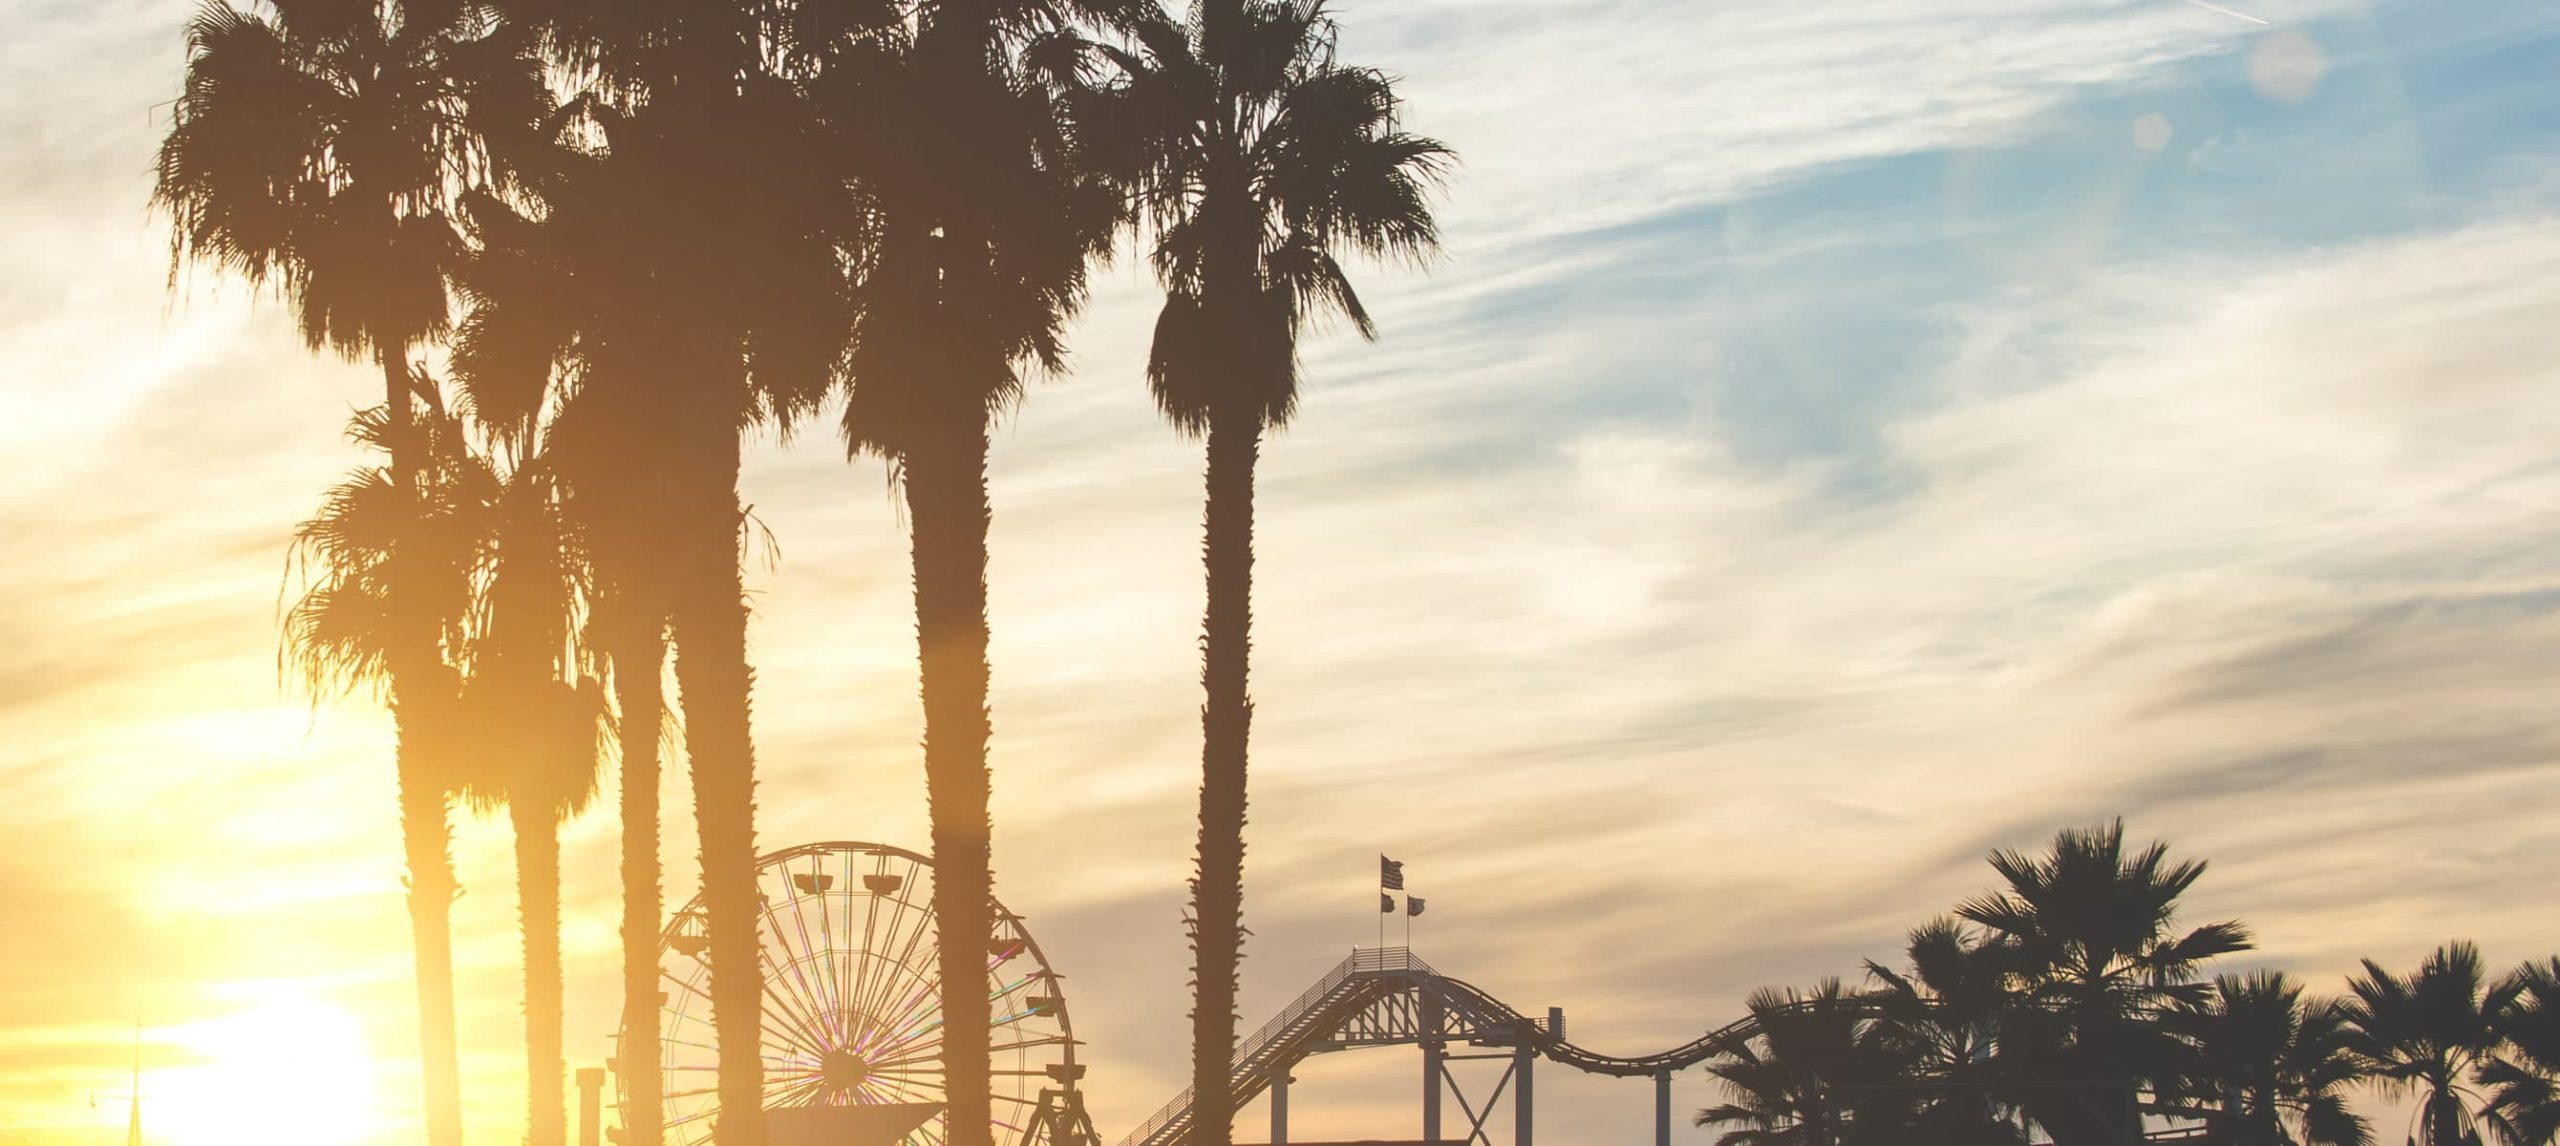 The Ultimate California Travel Guide